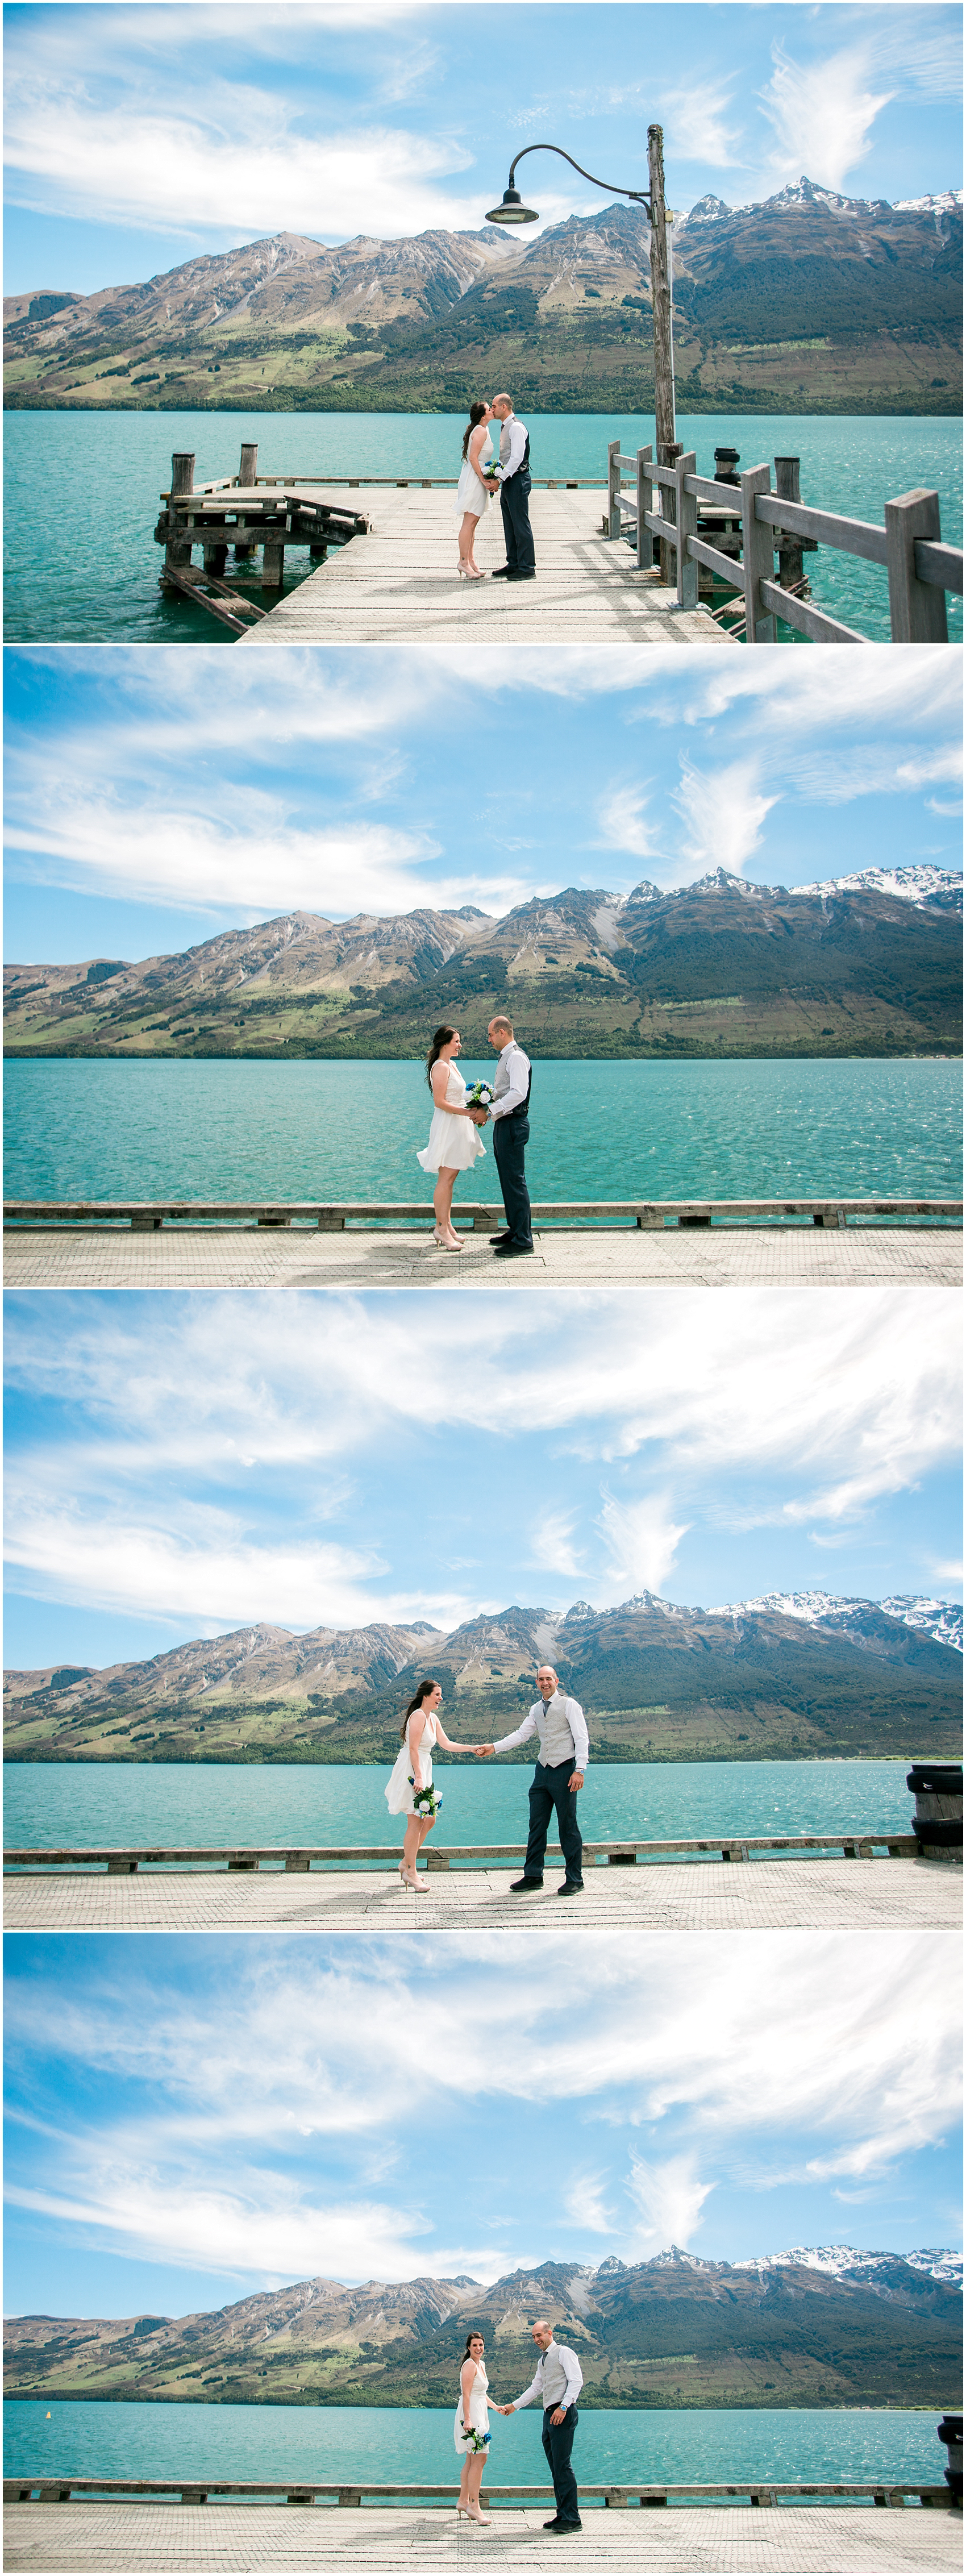 Queenstown New Zealand Wedding Photographer Bruna Fabricio Smetona Photo-0032.jpg